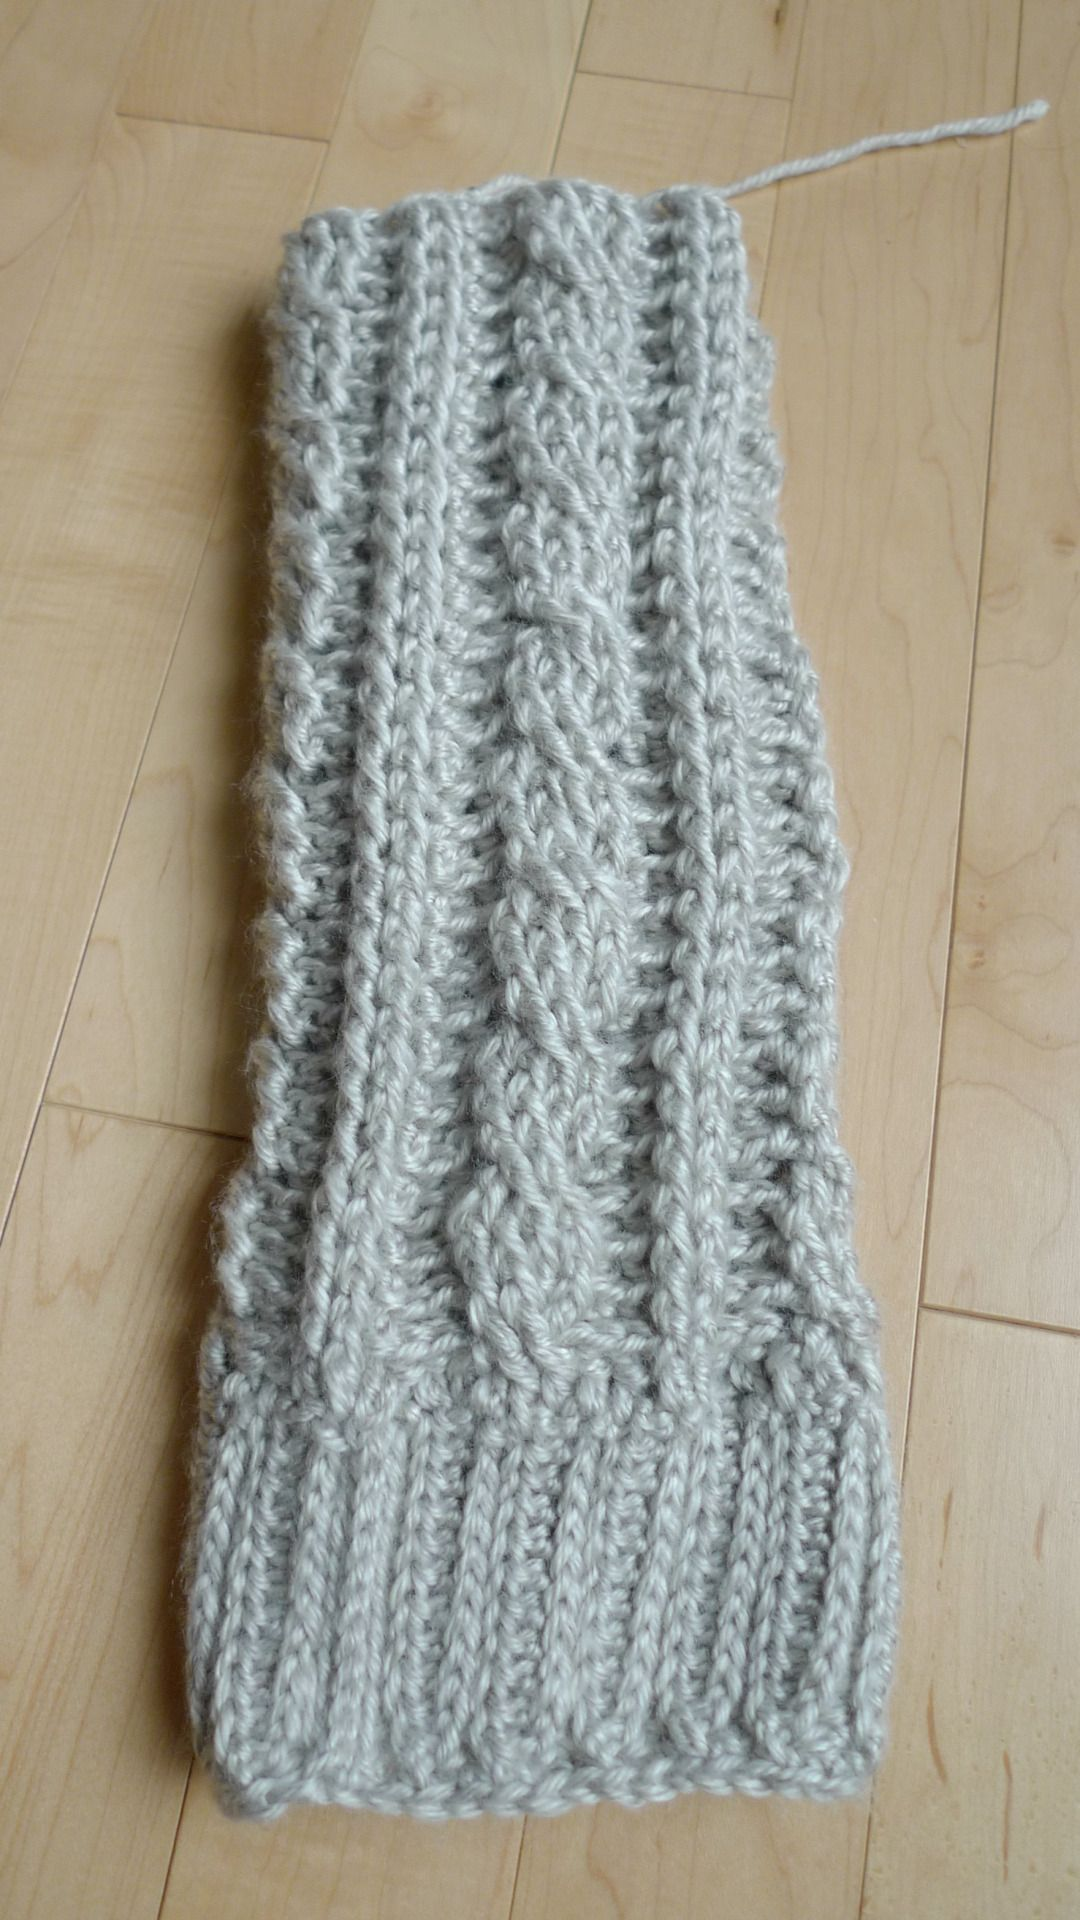 Cabled Legwarmers/Boot Cuffs | Pinterest | Dos agujas, Tejido y Patrones